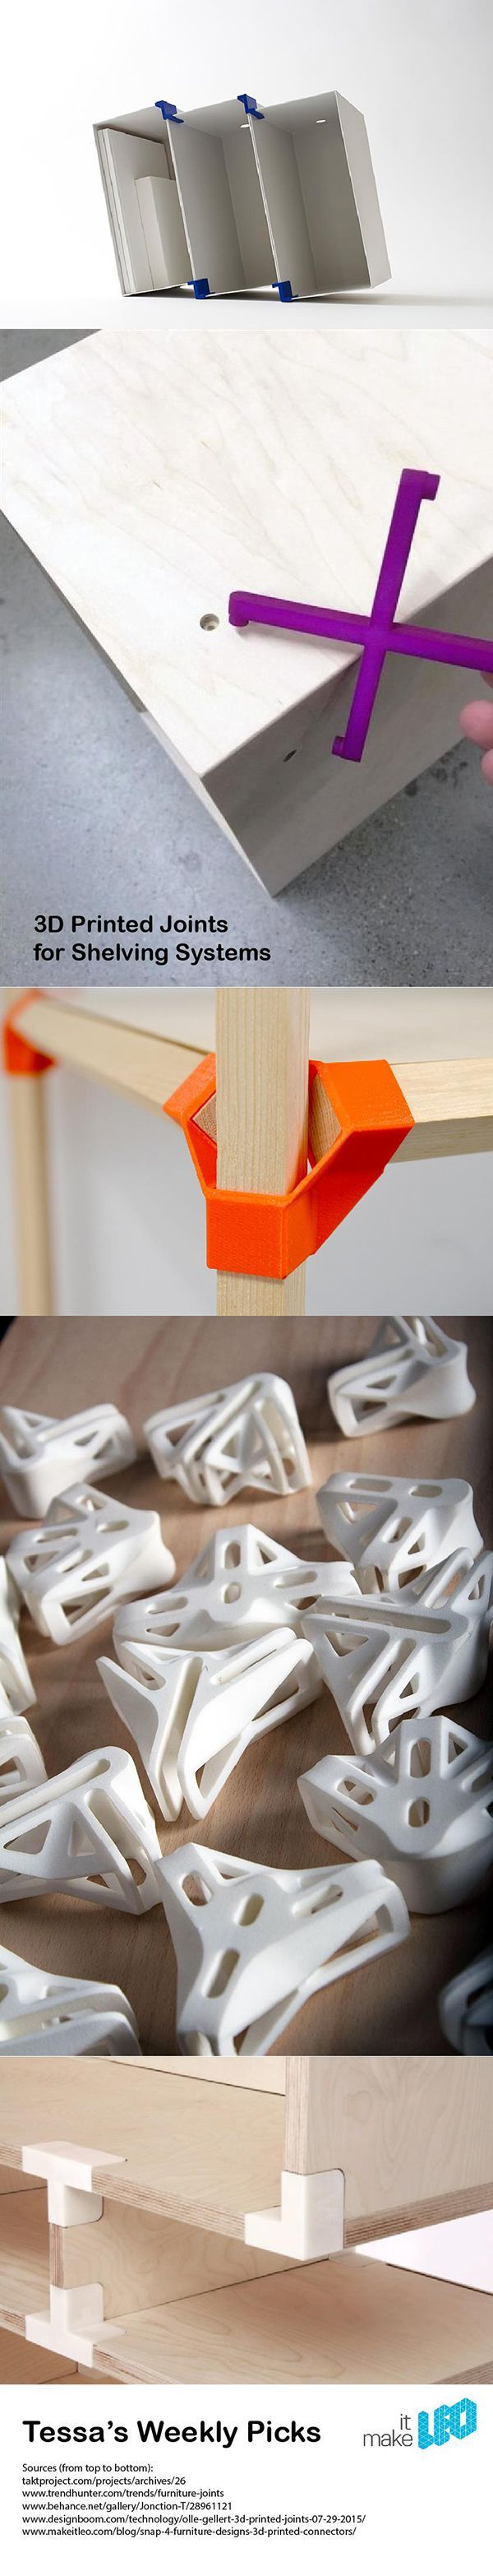 22 Best 3d Printing Images On Pinterest Pen Bricolage And Cnc Flexible Circuit Board Filacart Blog Megastore Printed Joints For Shelving Systems Tessas Weekly Picks Make It Leo 3dprintingdiy